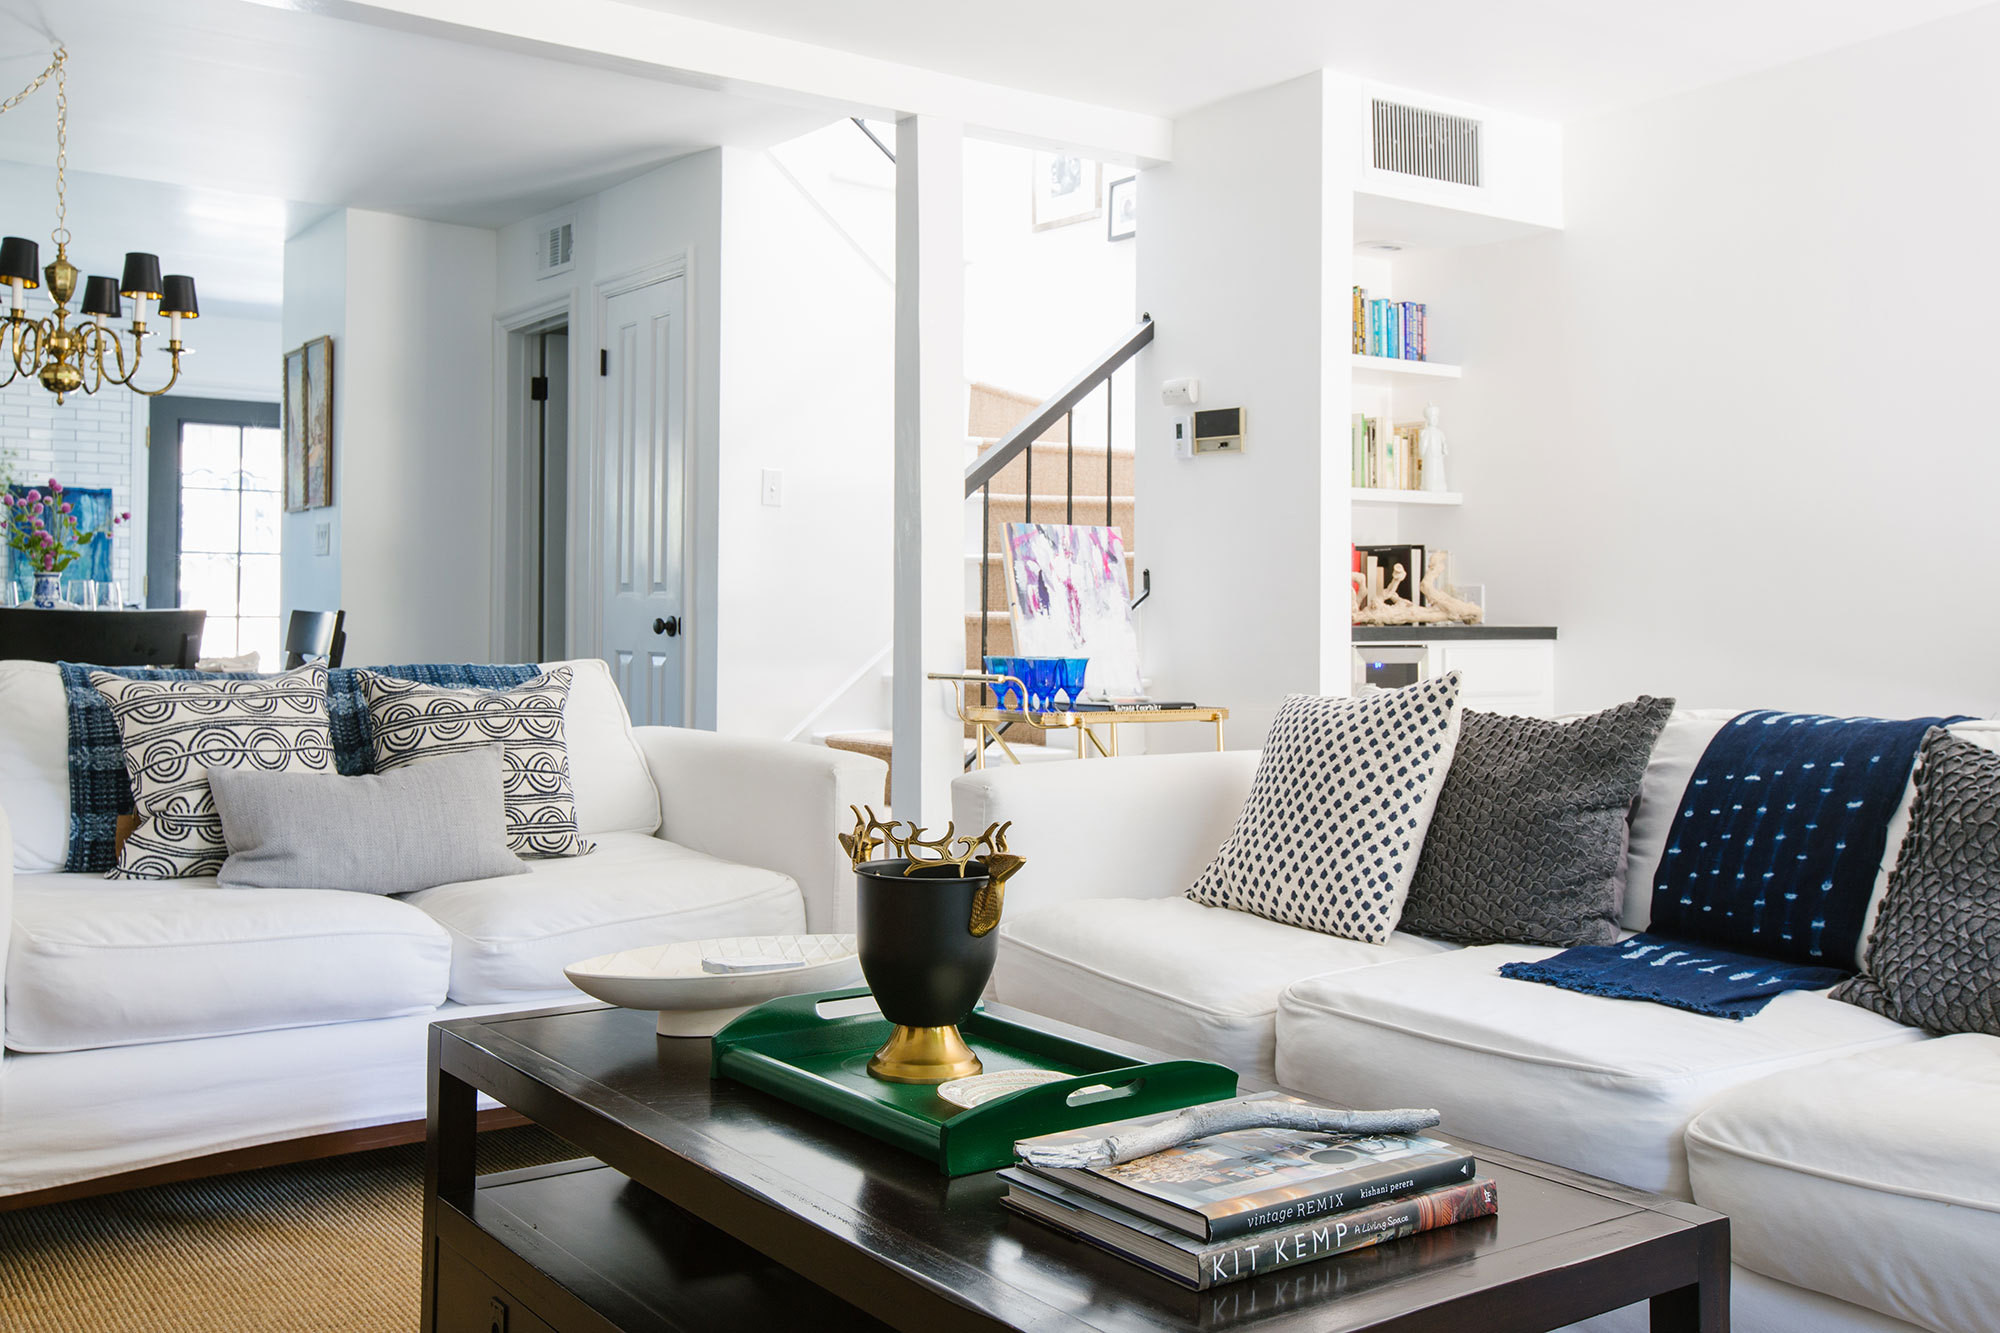 House tour - estilo clasico chic 19